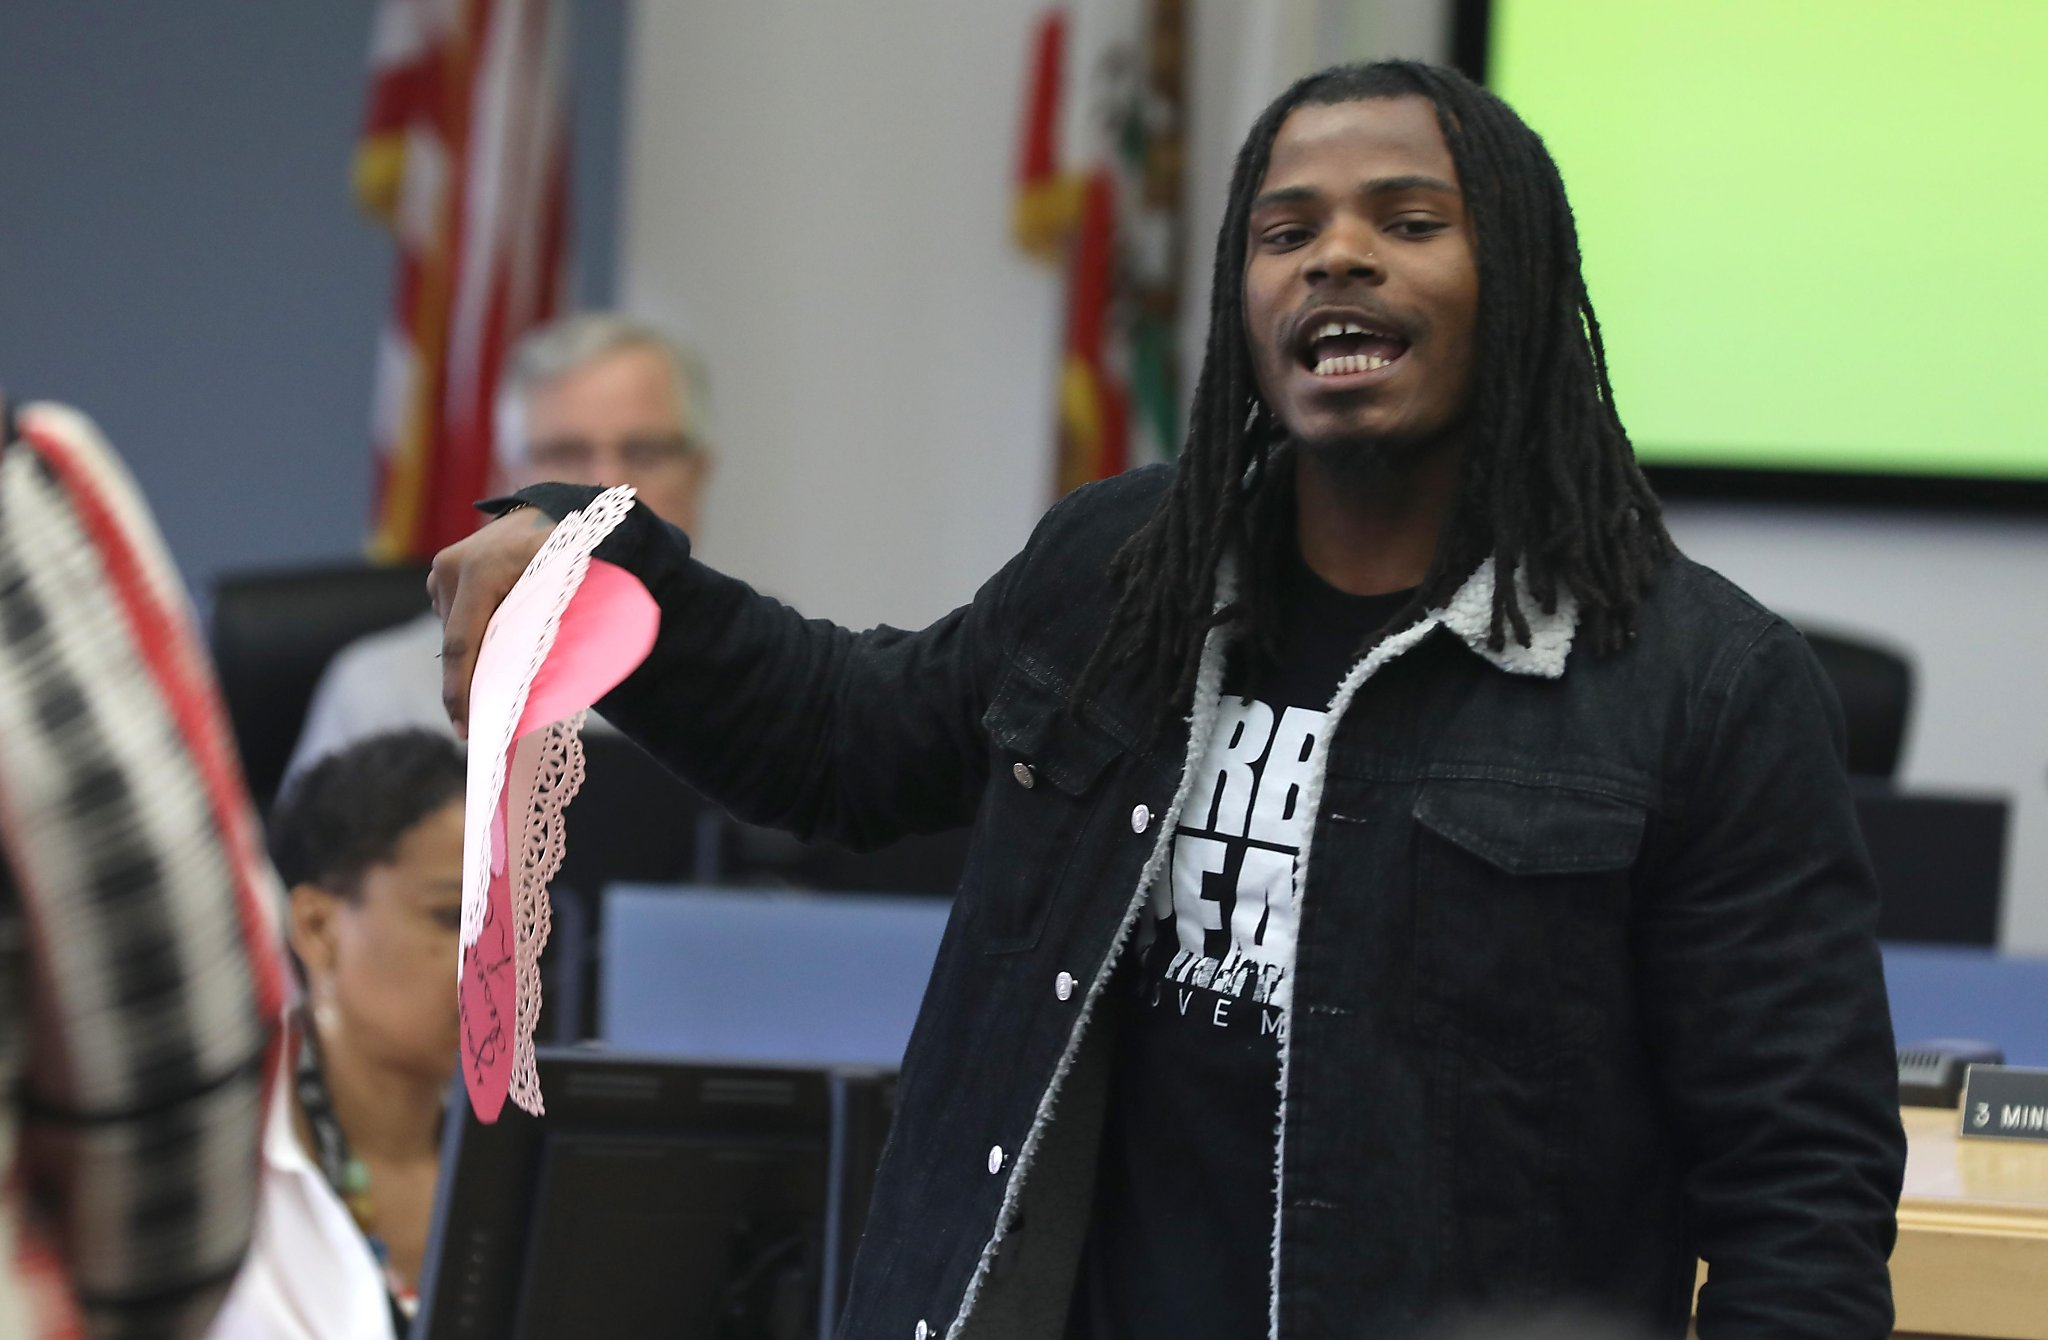 Protesters urge Alameda County to abandon effort to expand juvenile camp